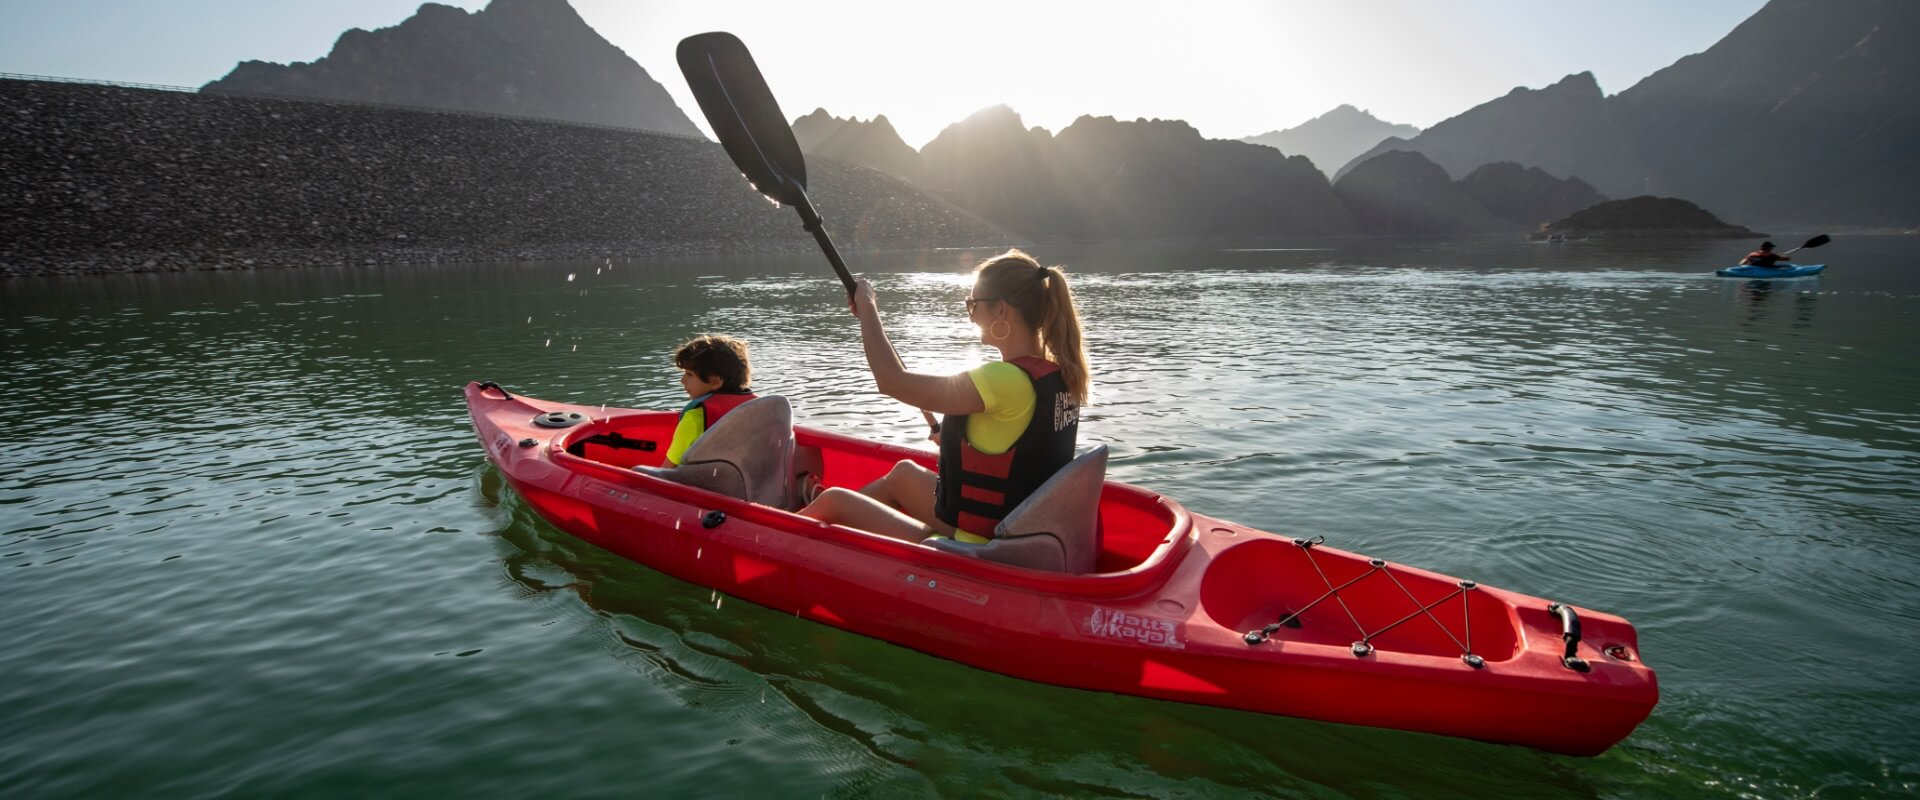 Visit-Hatta-explore-kayaking